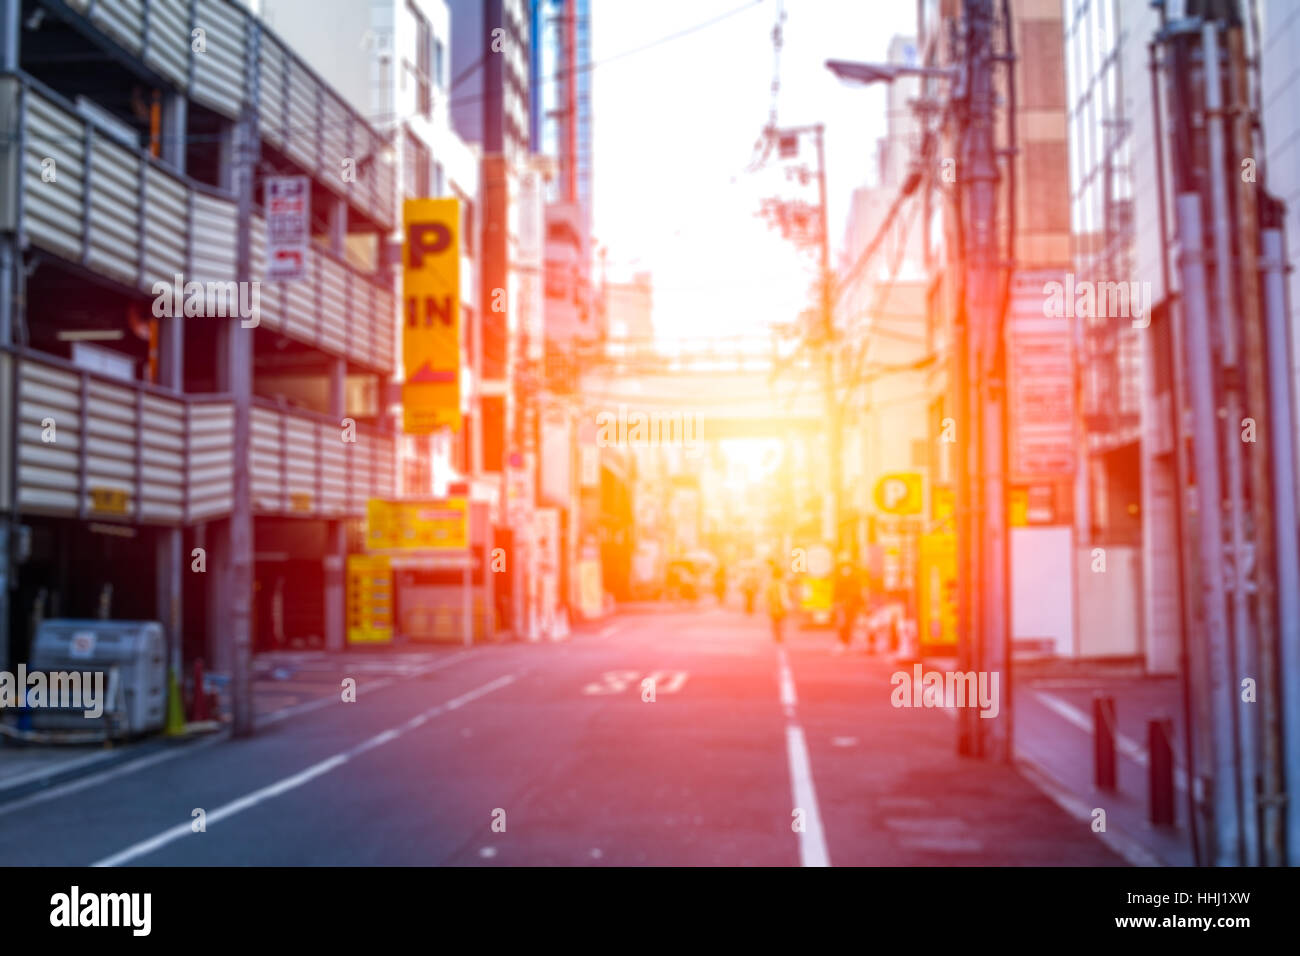 blur japan metro Kyoto city in the morning for background. Stock Photo